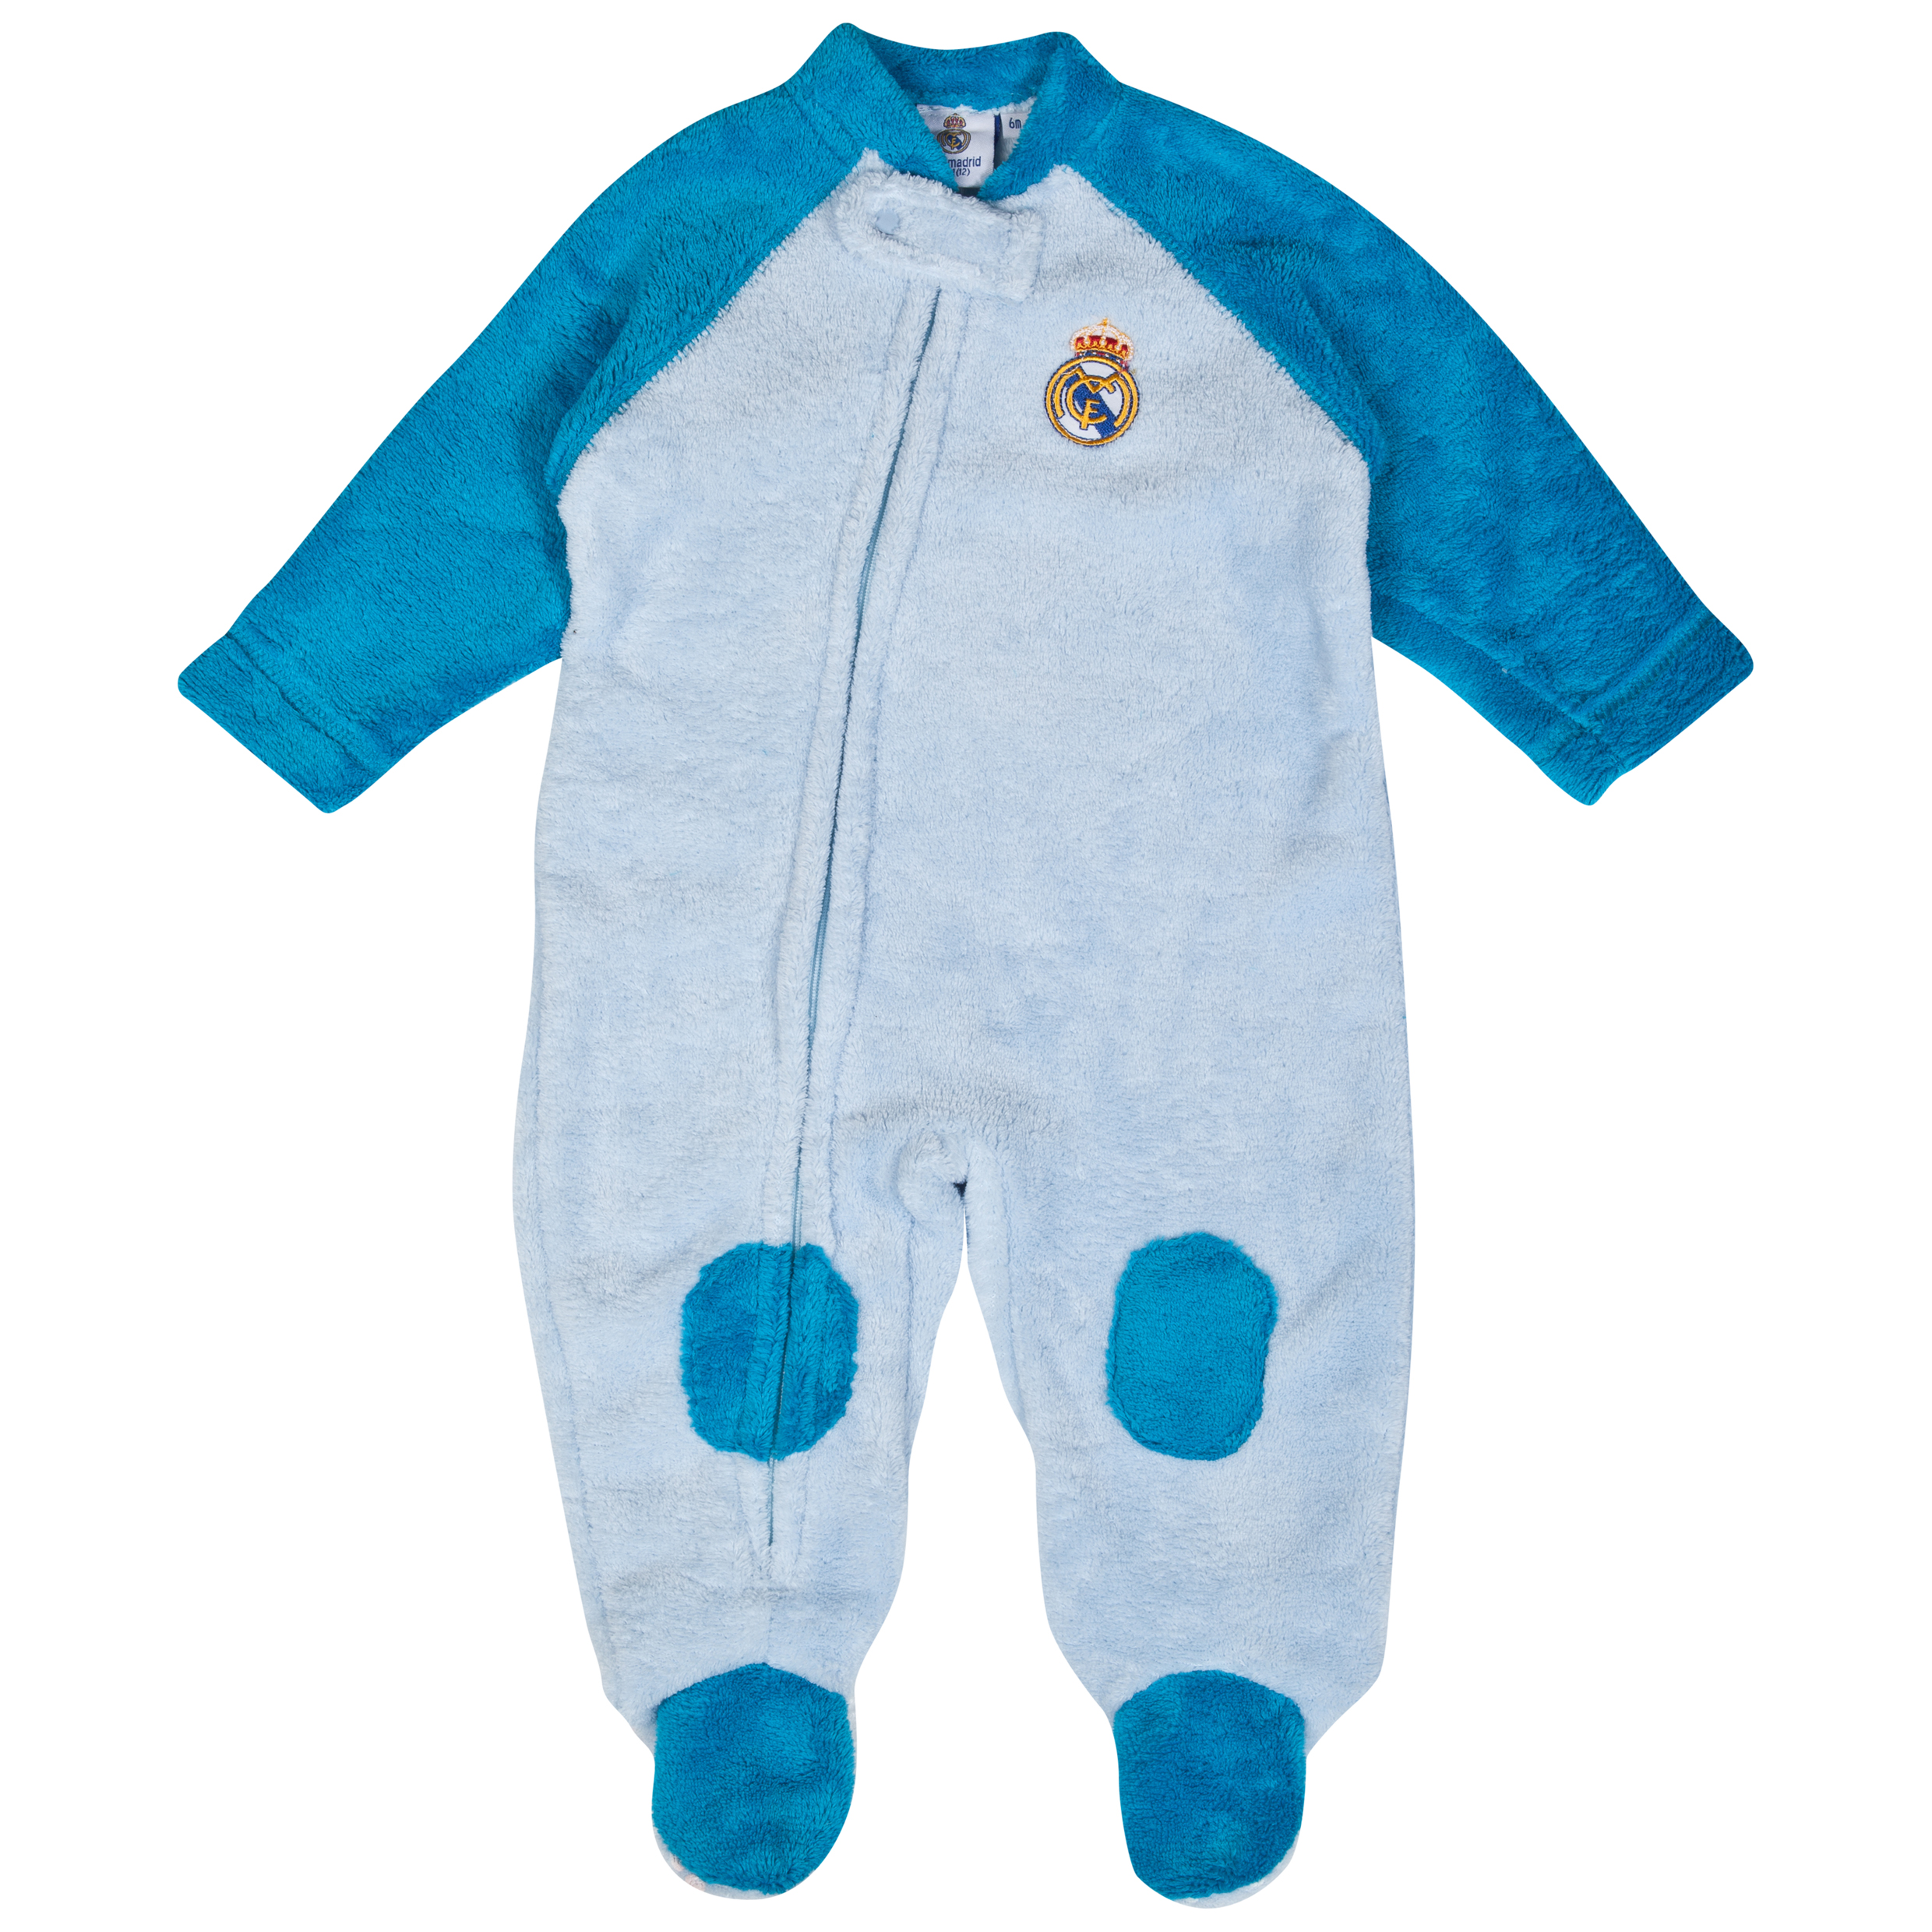 Real Madrid Snuggle Sleepsuit - Baby Blue